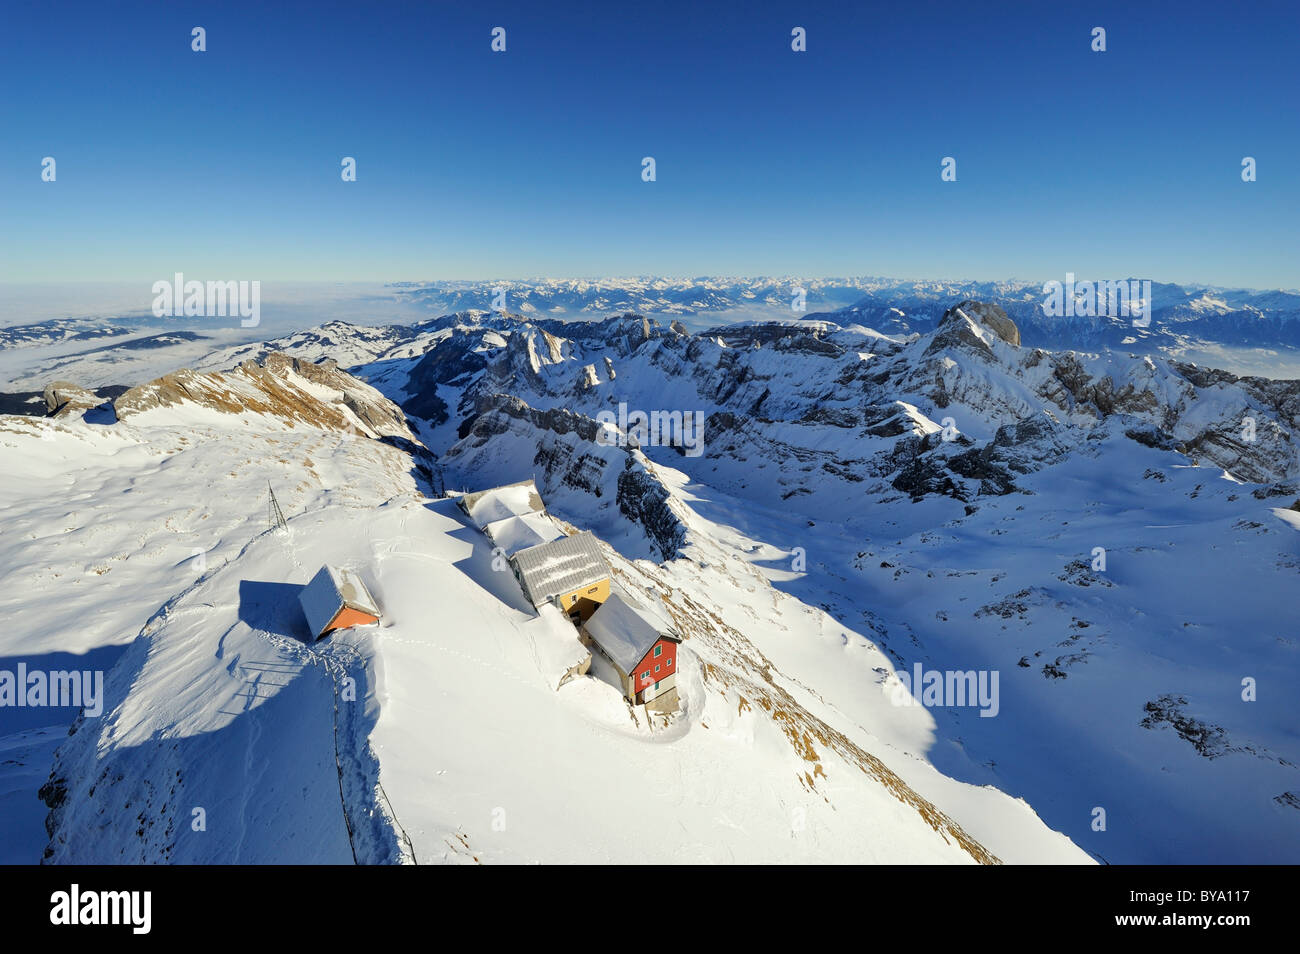 Snow-covered Alpstein massif and some mountain inns as seen from the summit of Saentis mountain, canton of Appenzell - Stock Image